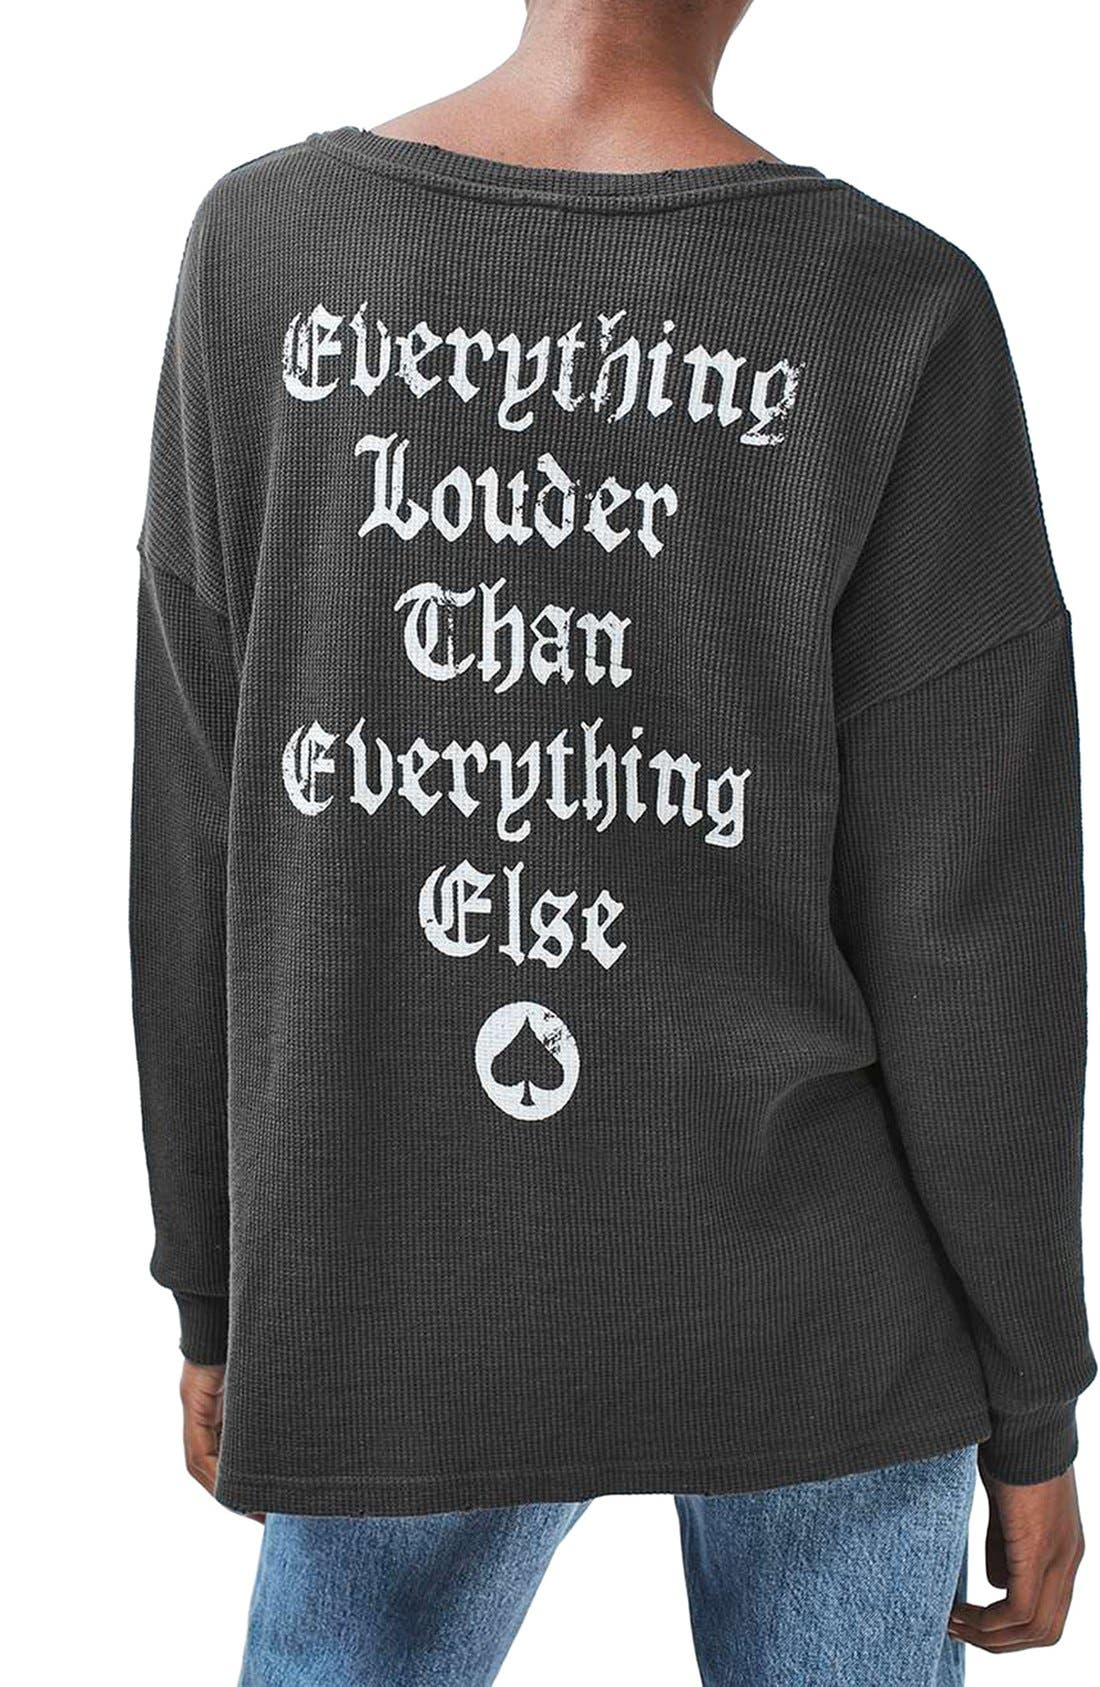 TOPSHOP,                             by And Finally Motorhead Sweatshirt,                             Alternate thumbnail 4, color,                             001